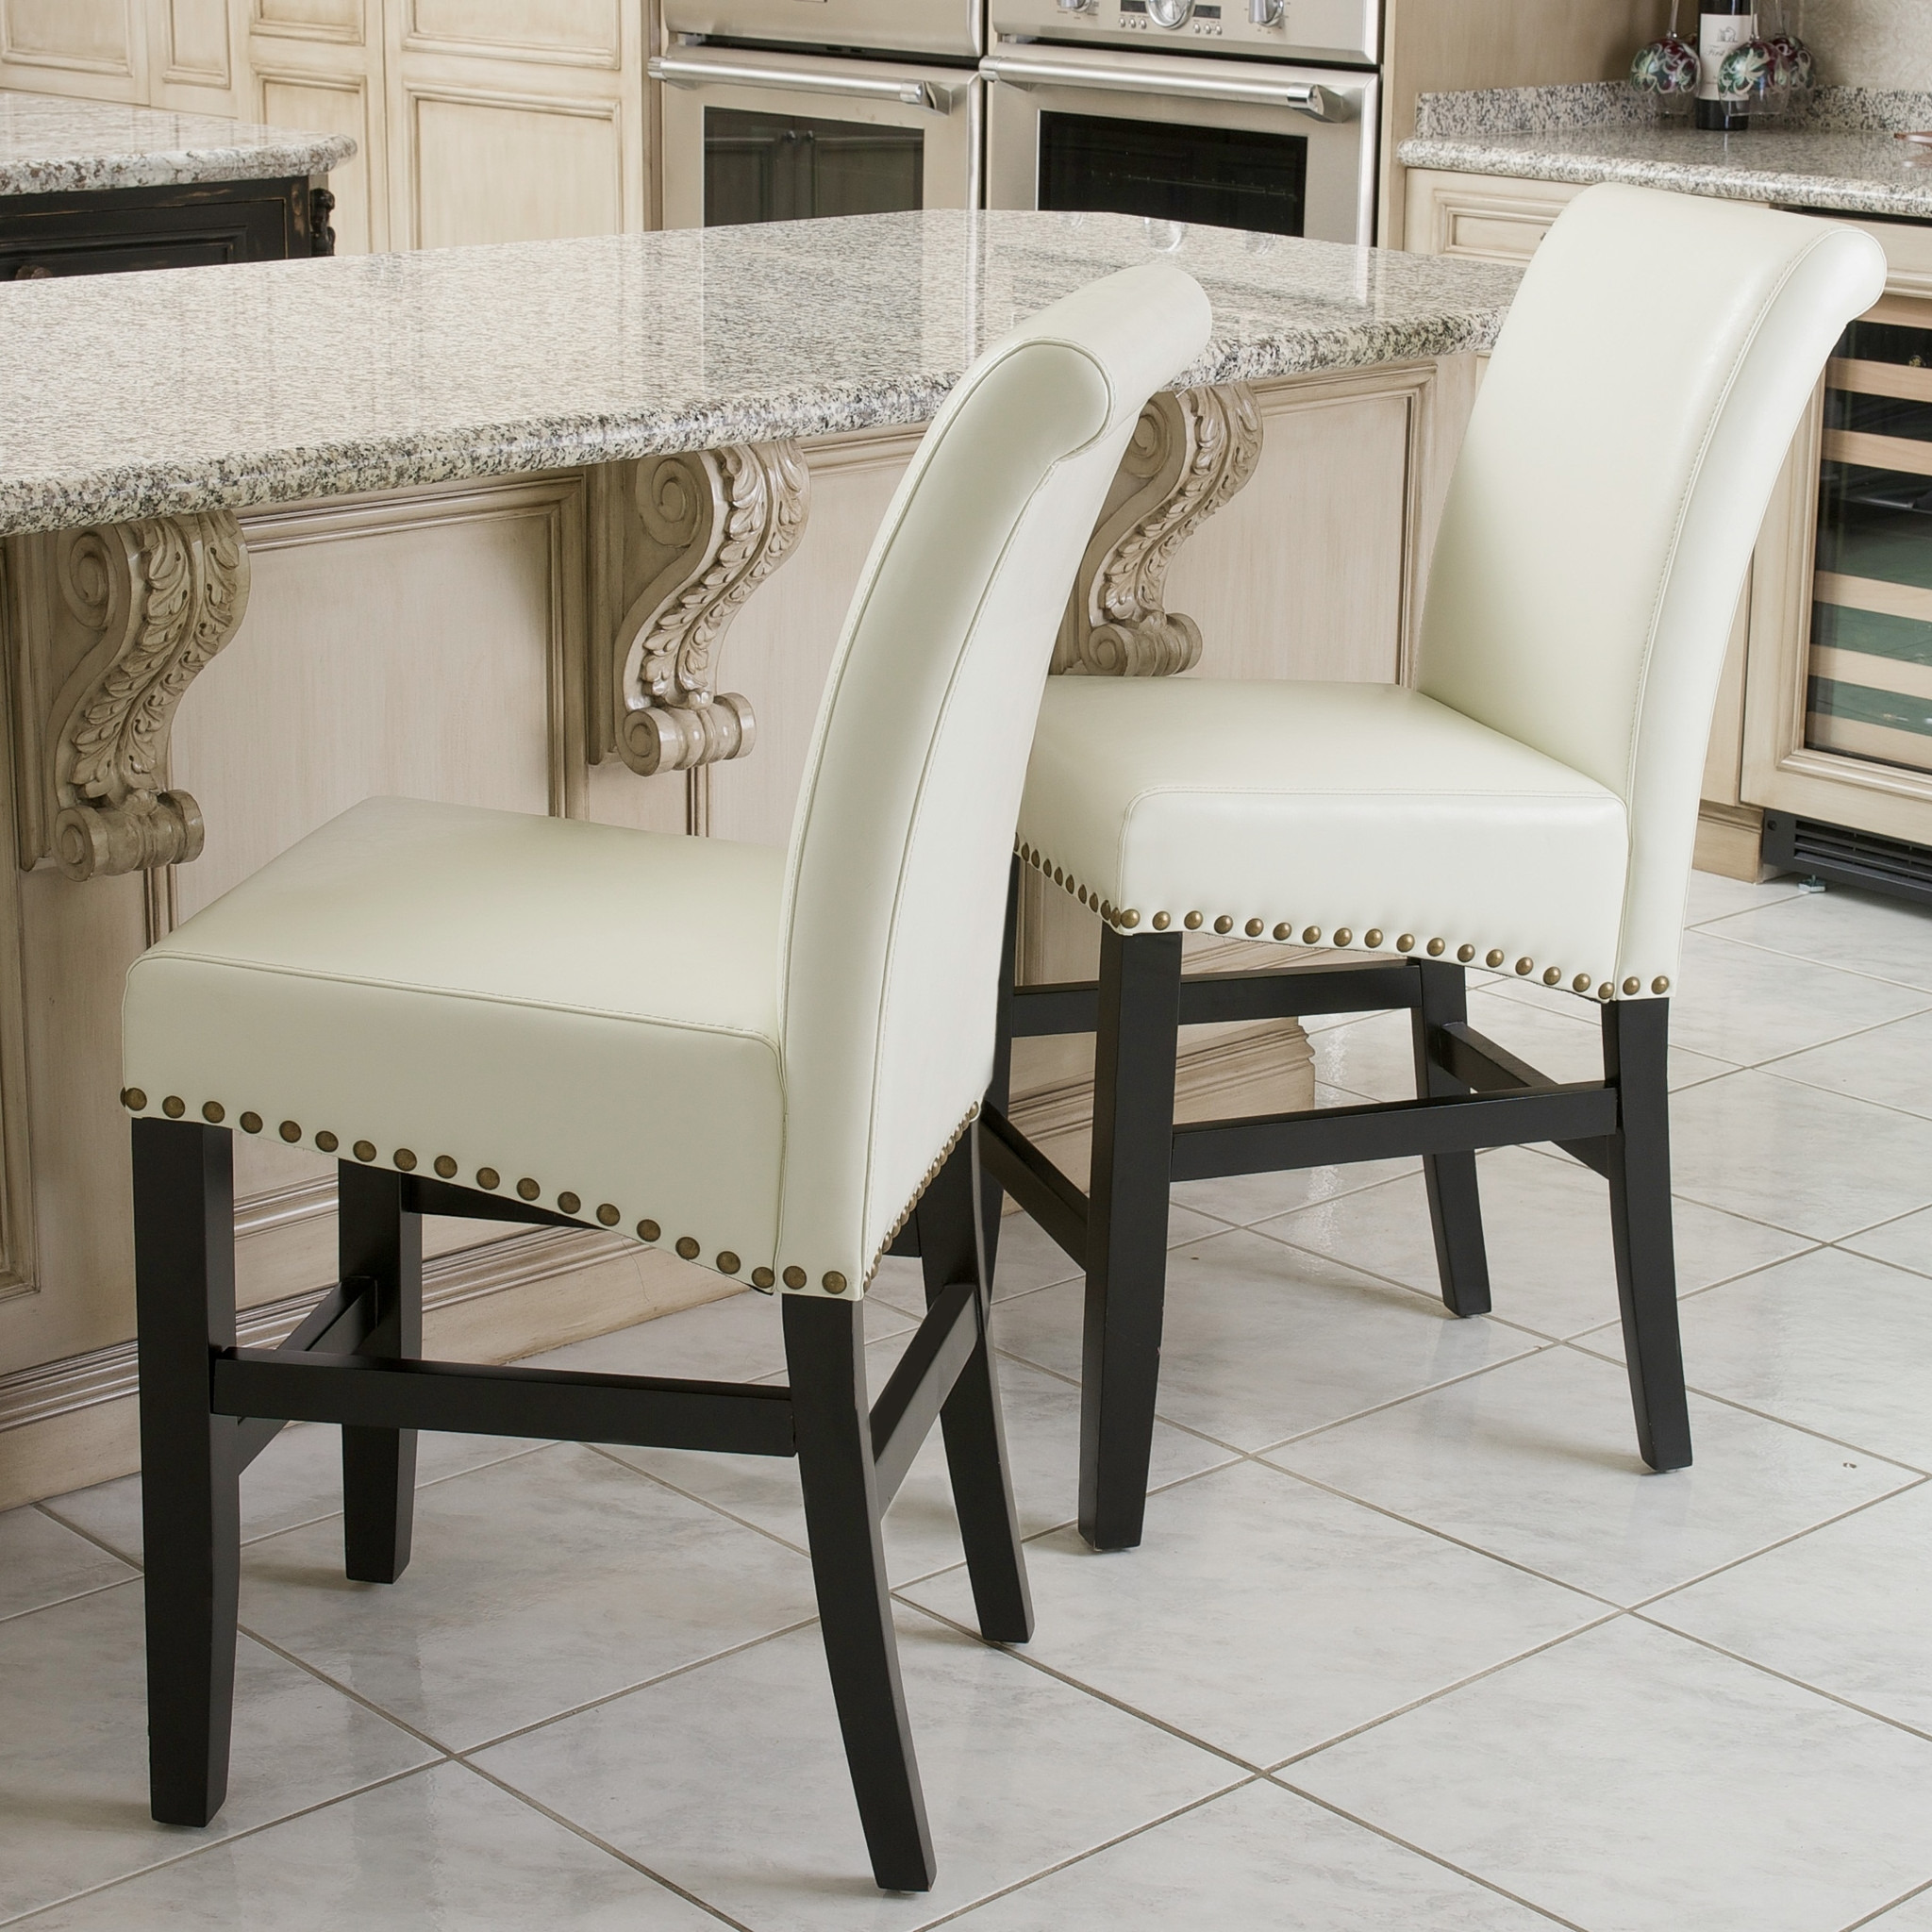 Ivory Leather Dining Chairs for Popular Impressive Ivory Leather Dining Room Chairs - Esescatrina